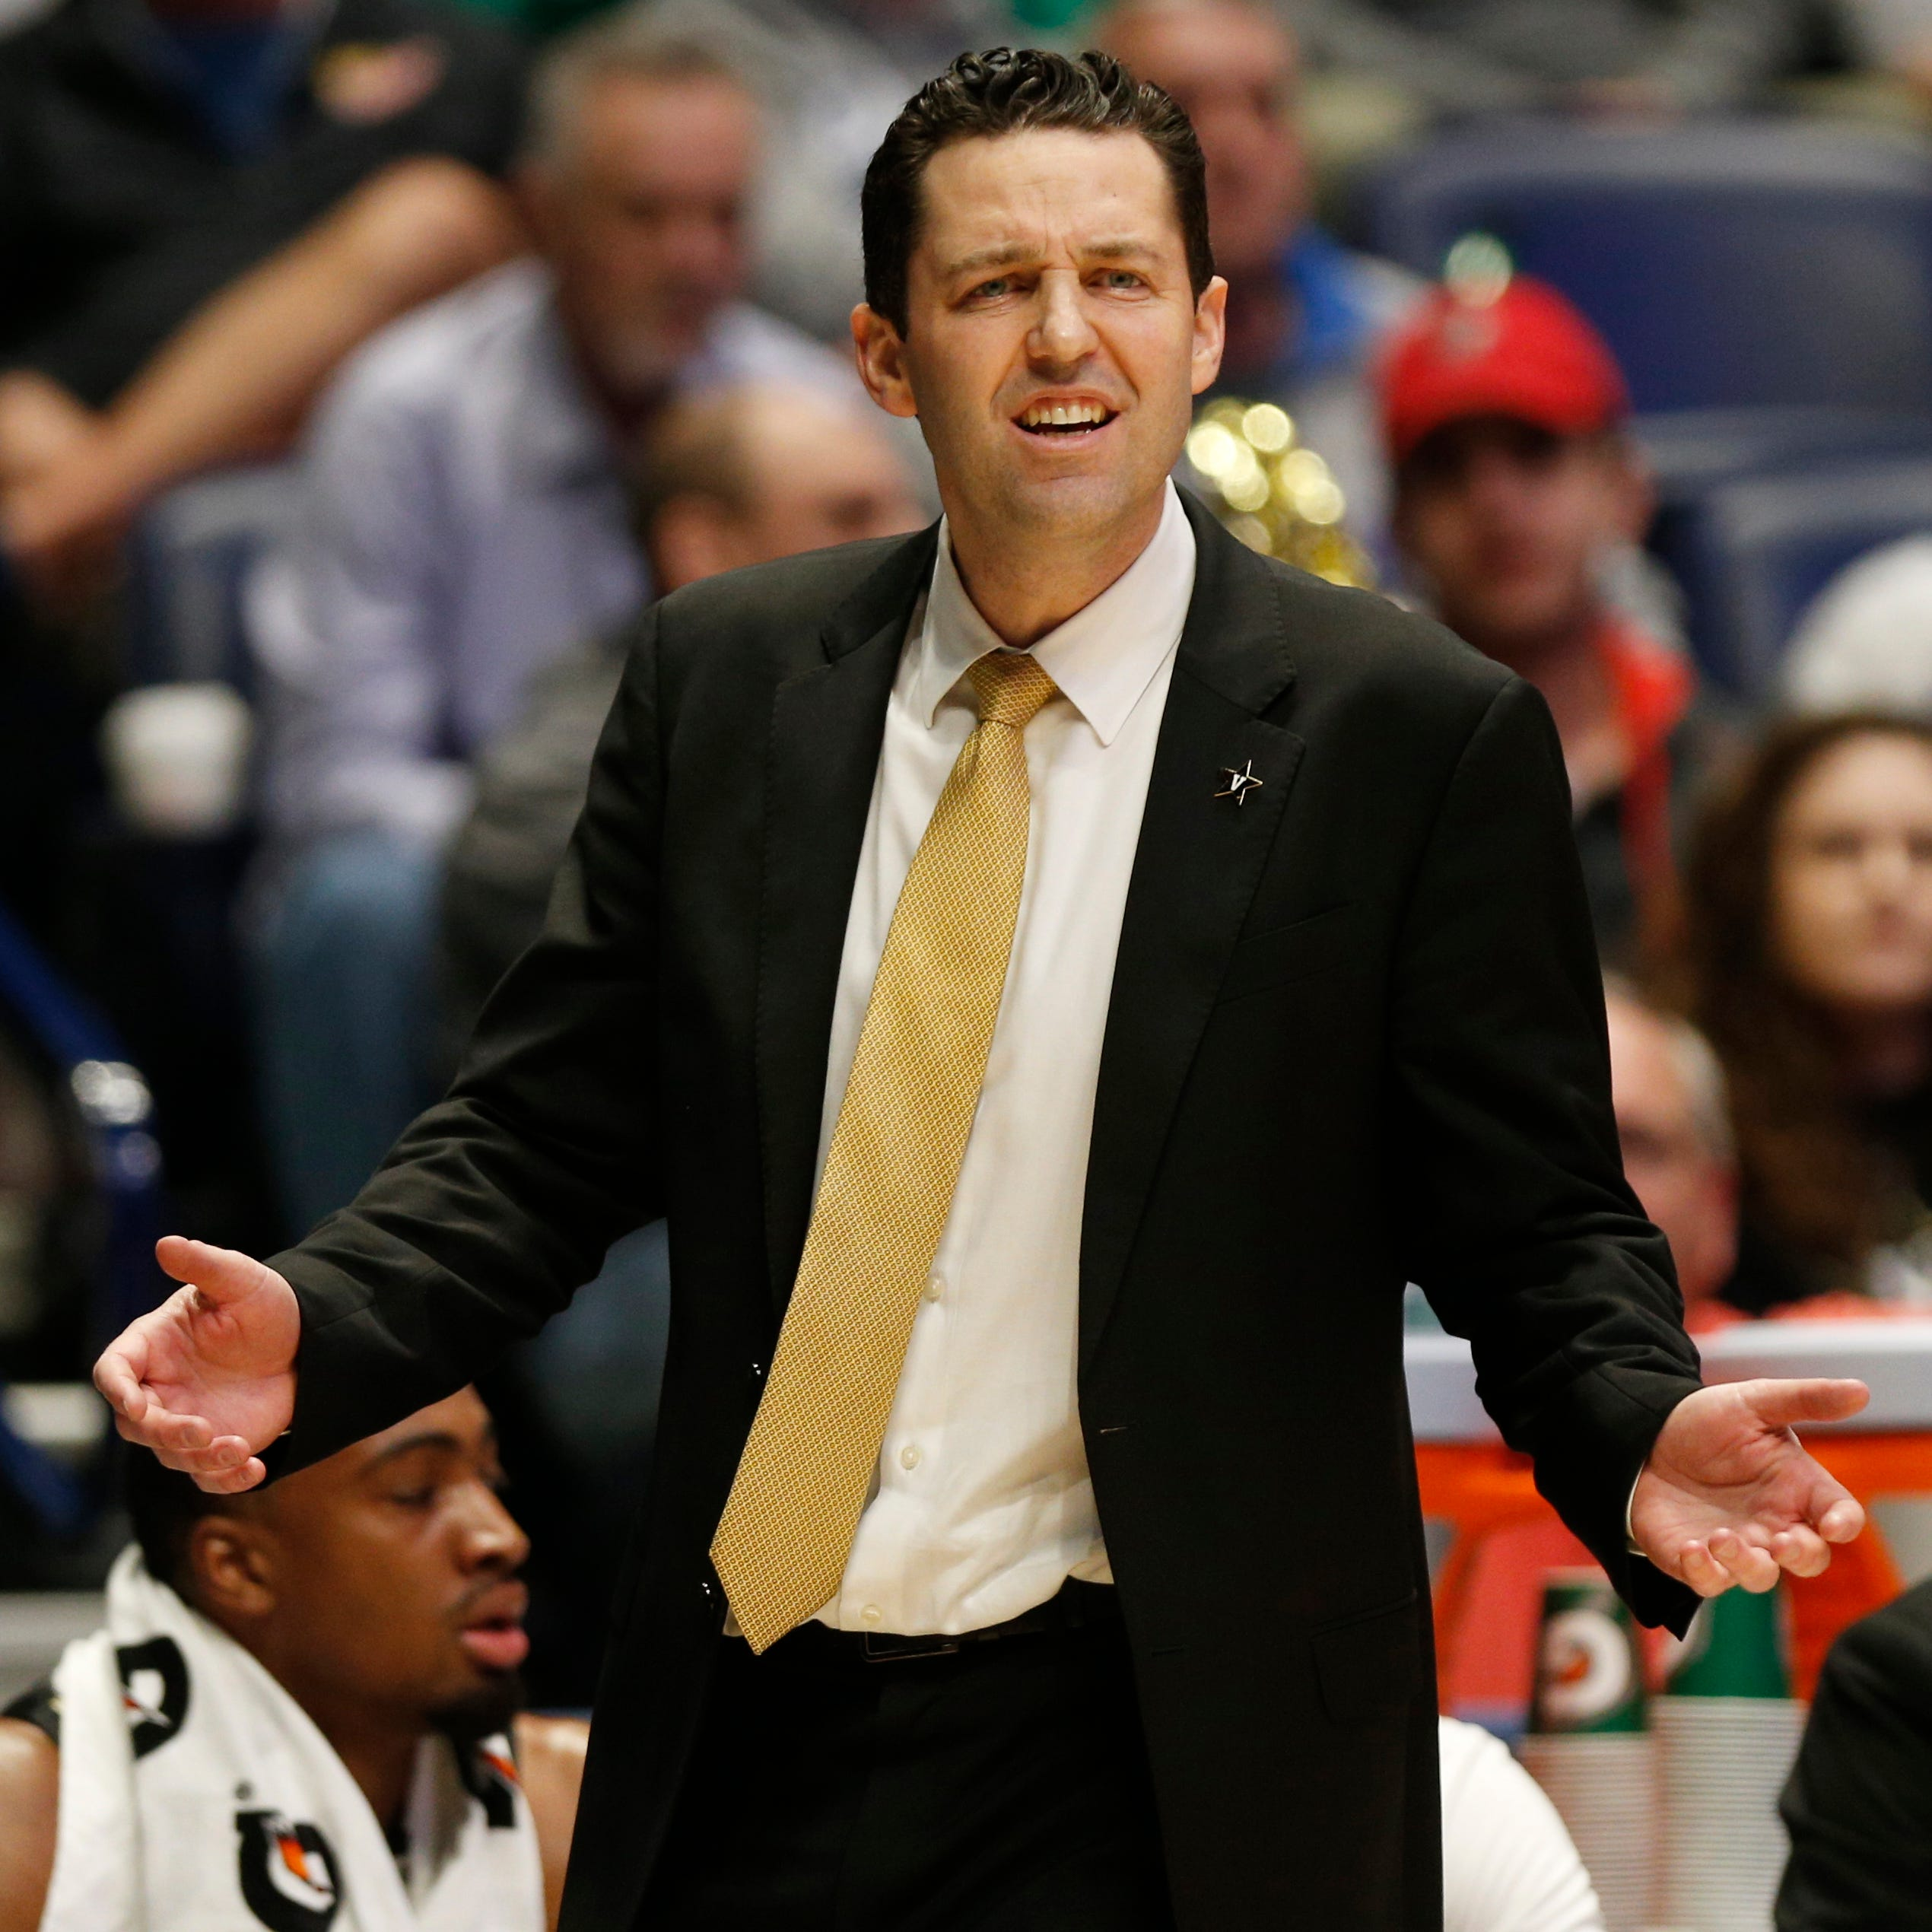 Should Vanderbilt basketball keep or fire Bryce Drew? Pick a side